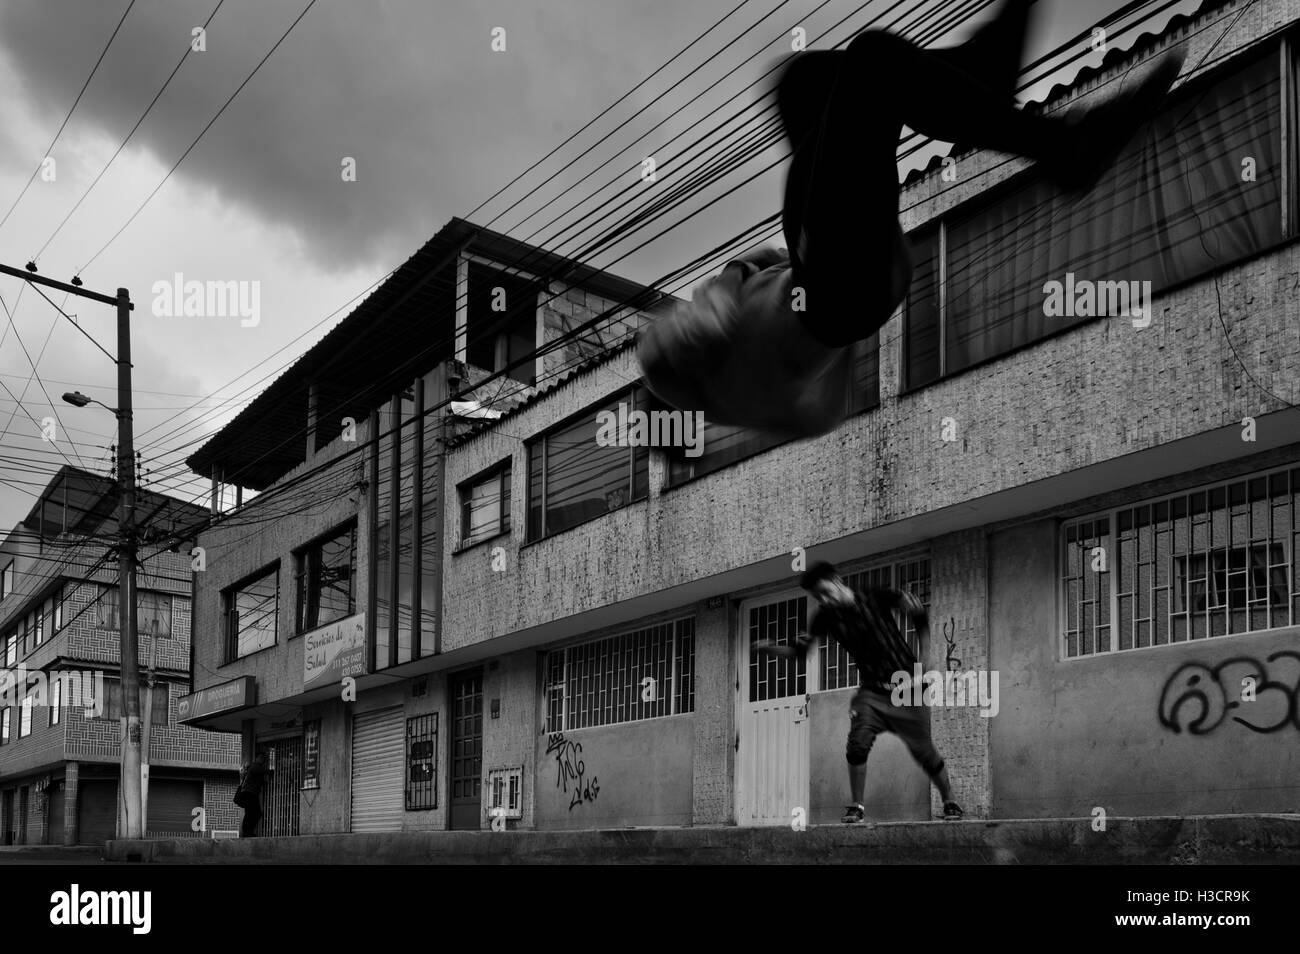 Colombian parkour athletes from Plus Parkour team do a front flip as they practise on the street in Bogotá, - Stock Image